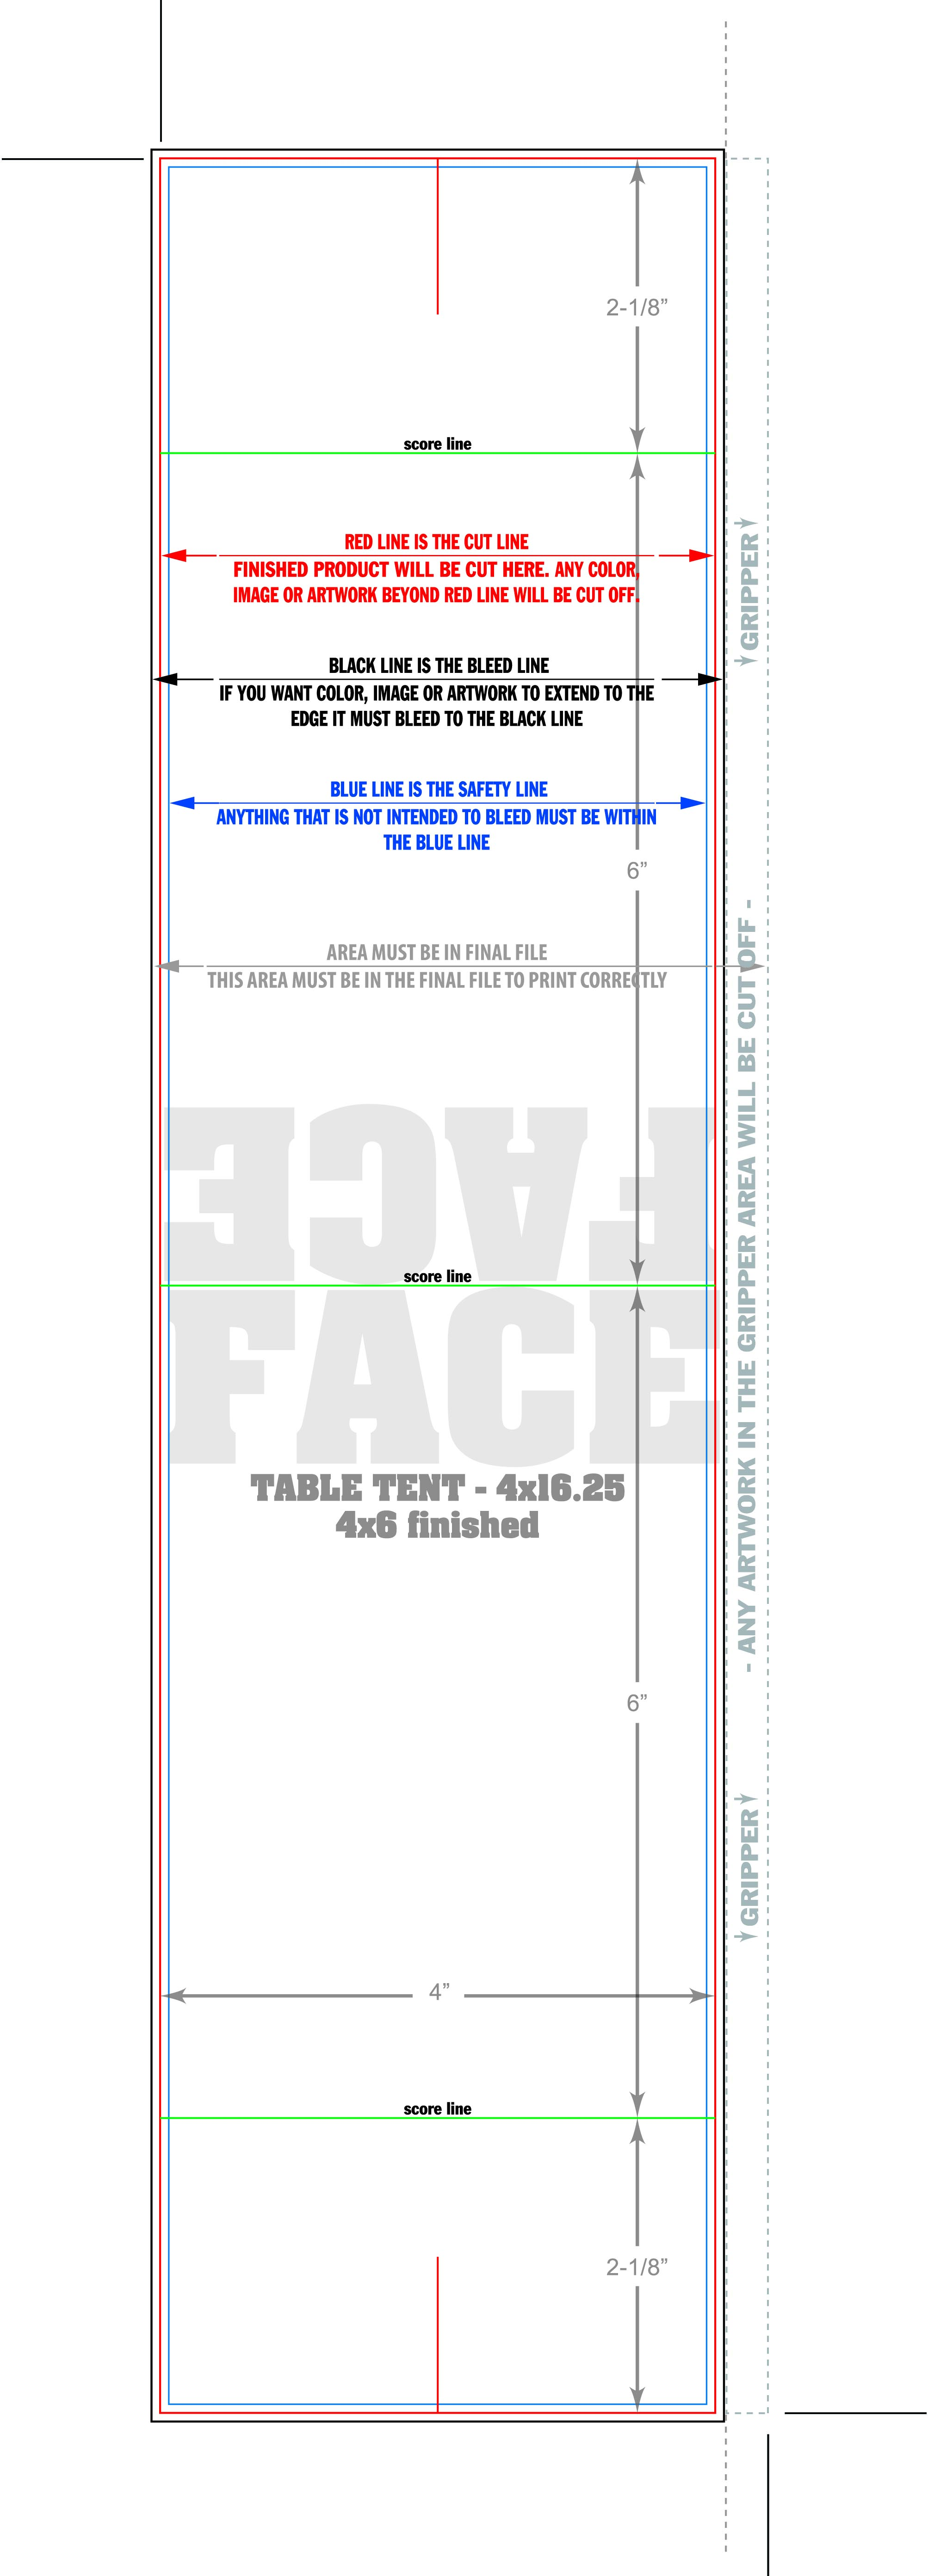 4x6 table tent template table tent cards templates 4x6 table tent cards template